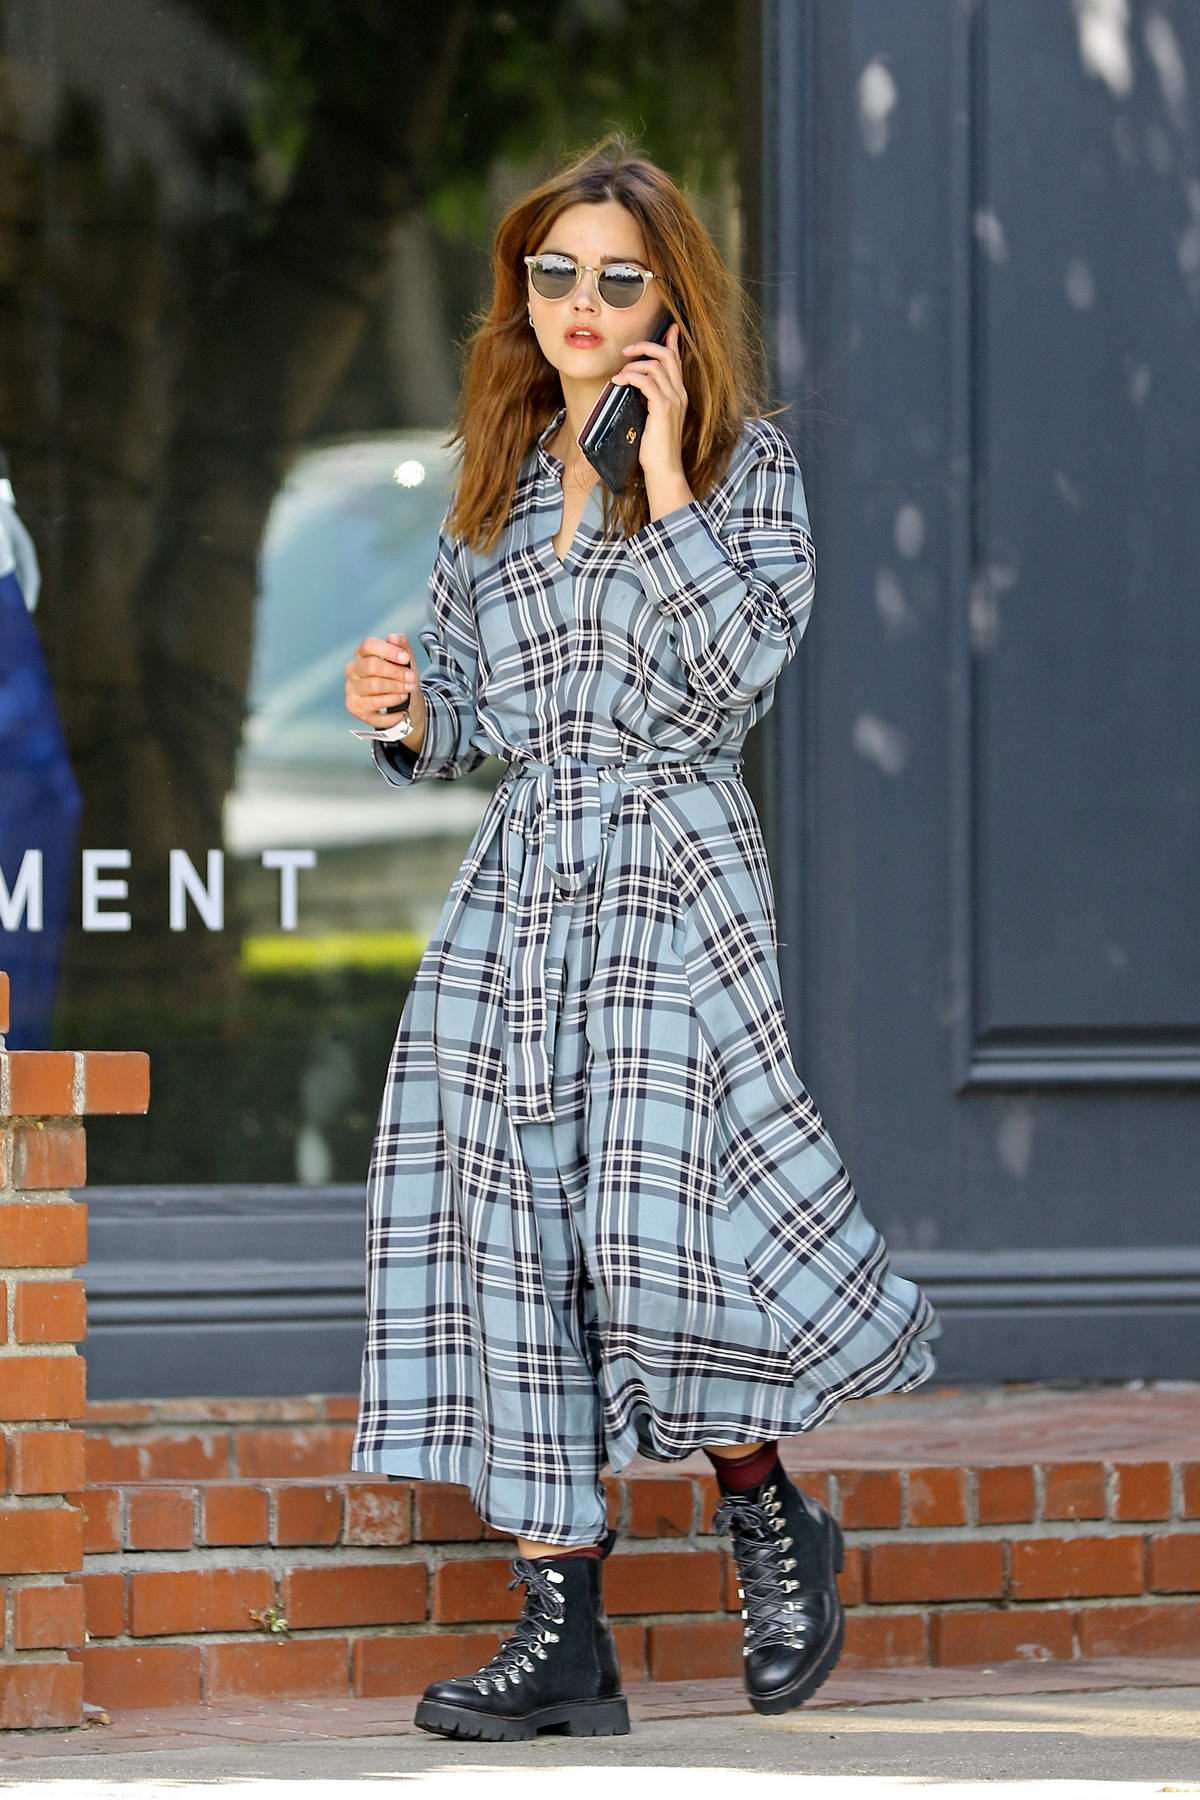 Jenna Coleman looks stylish in a plaid robe dress and ankle boots while out in Los Angeles